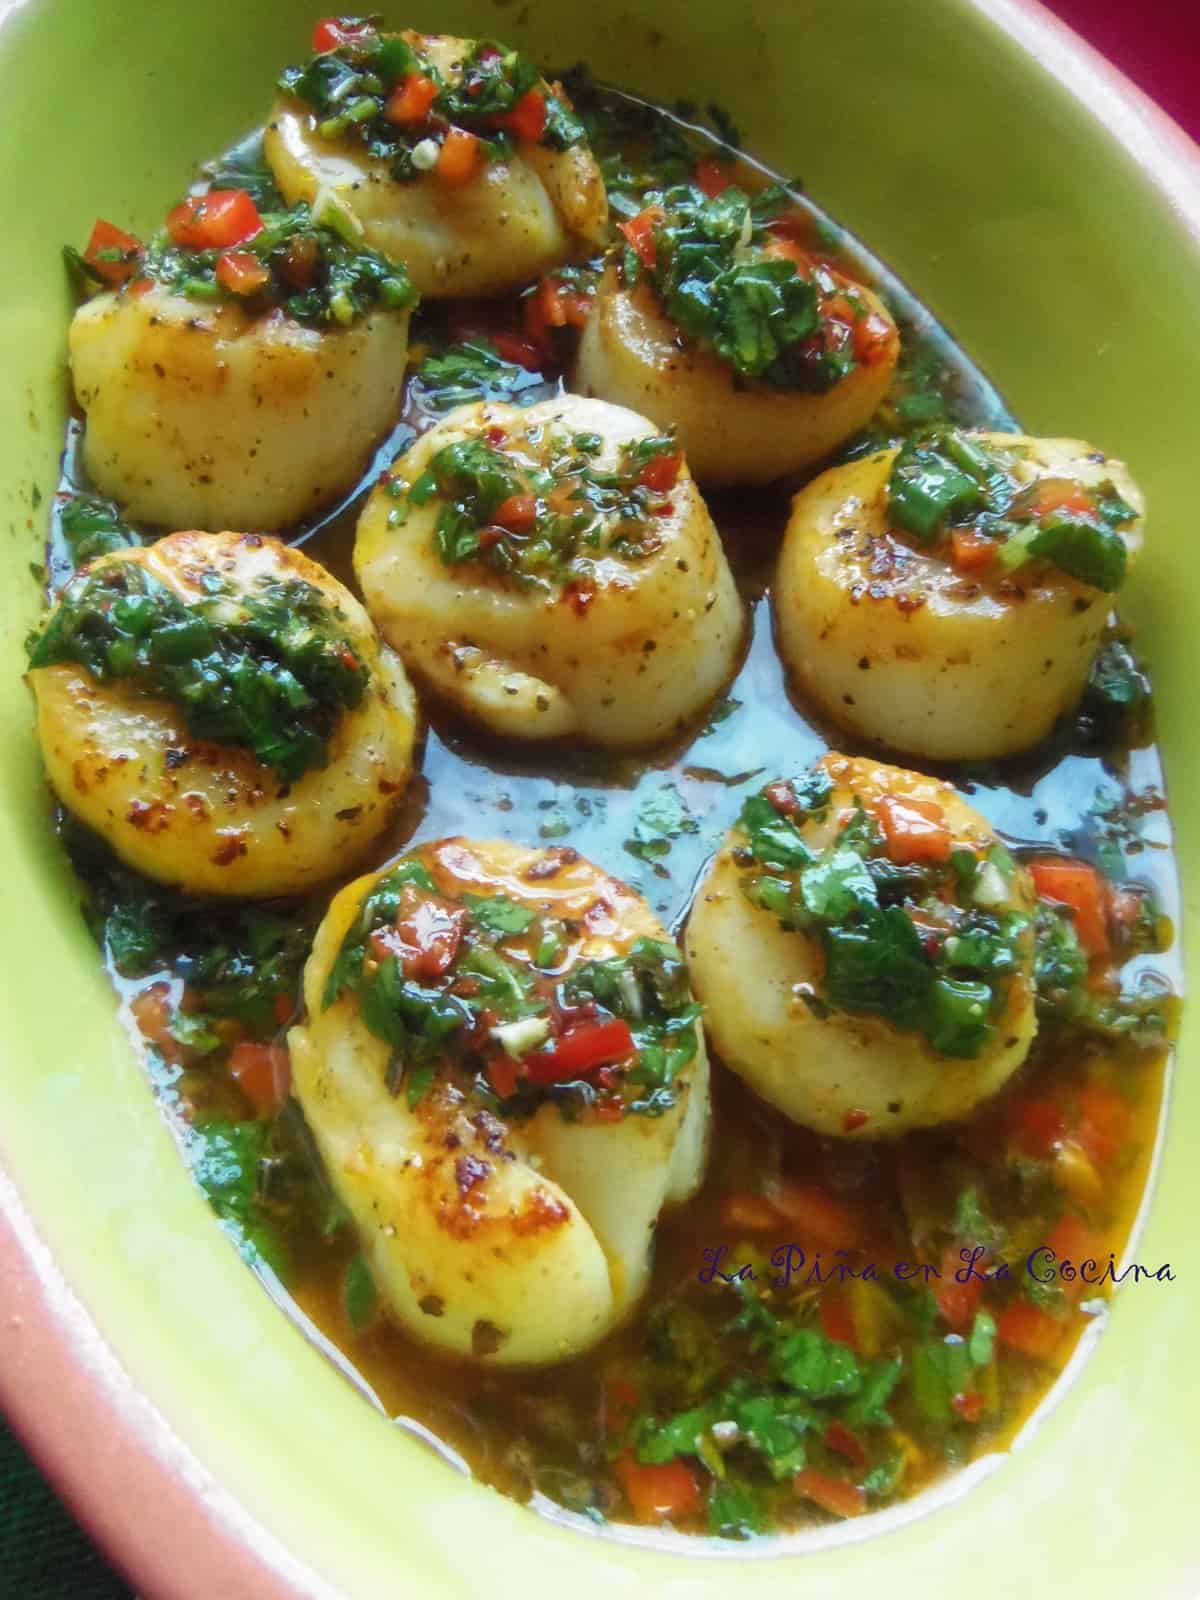 Seared Scallops in a Chimichurri Style Sauce